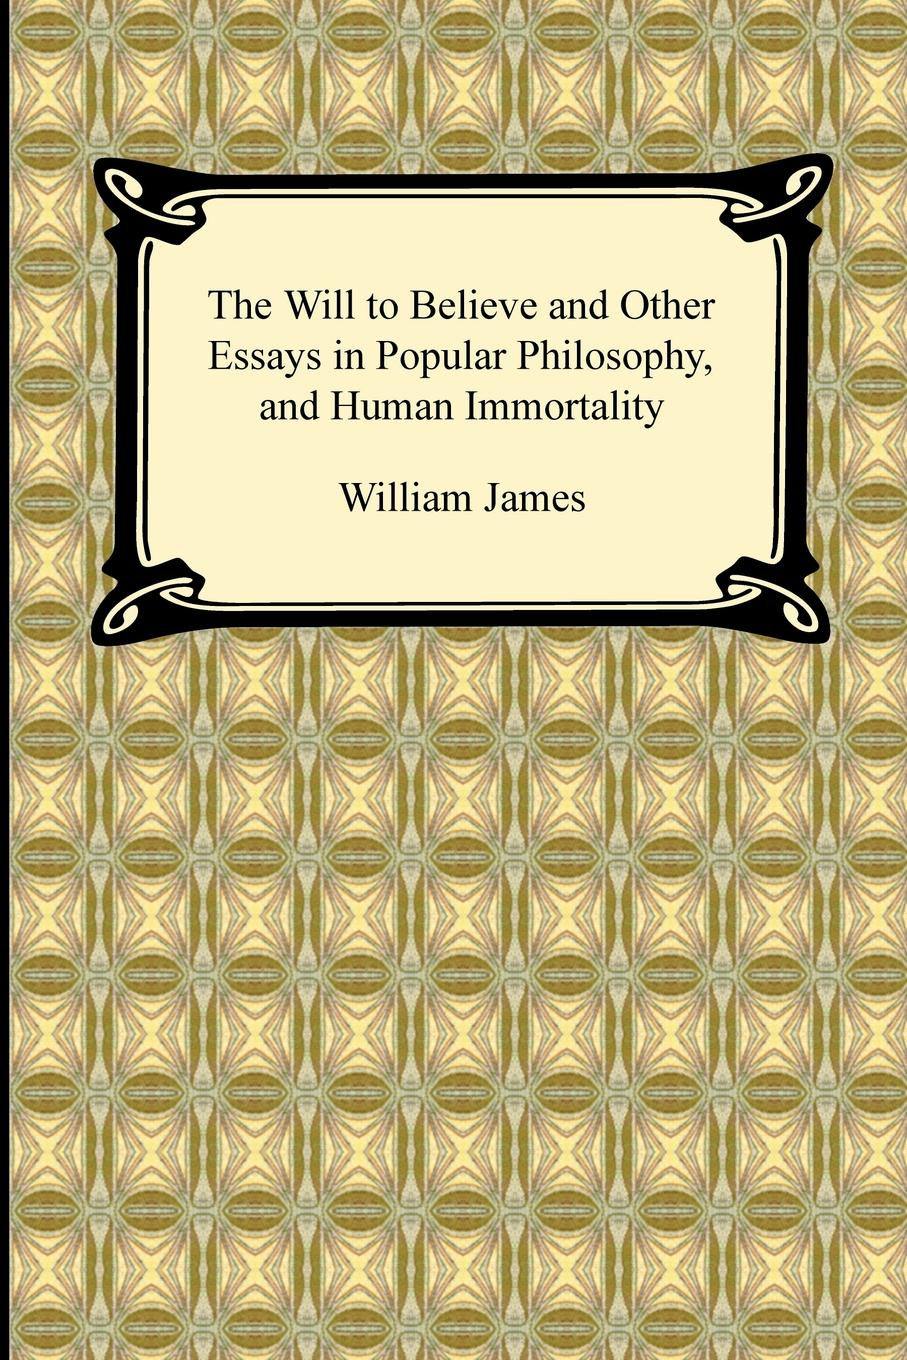 William James The Will to Believe and Other Essays in Popular Philosophy, and Human Immortality william james psychology the briefer course